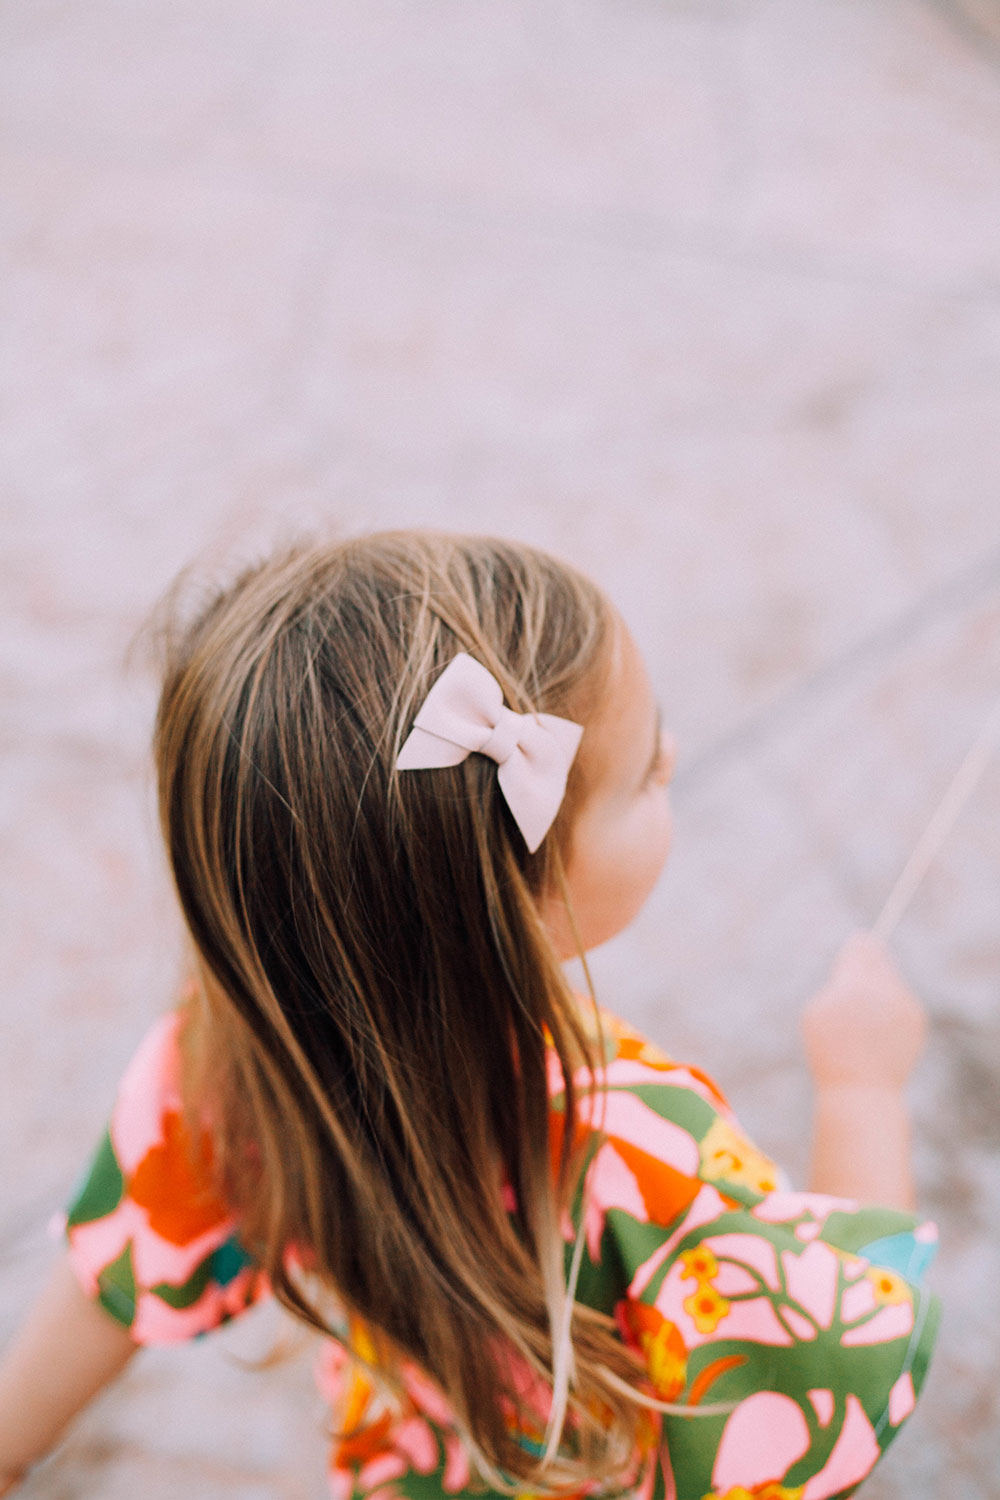 love her sweet spirit and that cute leather hairbow | sweetest mommy and me matching outfits by crew and lu | thelovedesignedlife.com